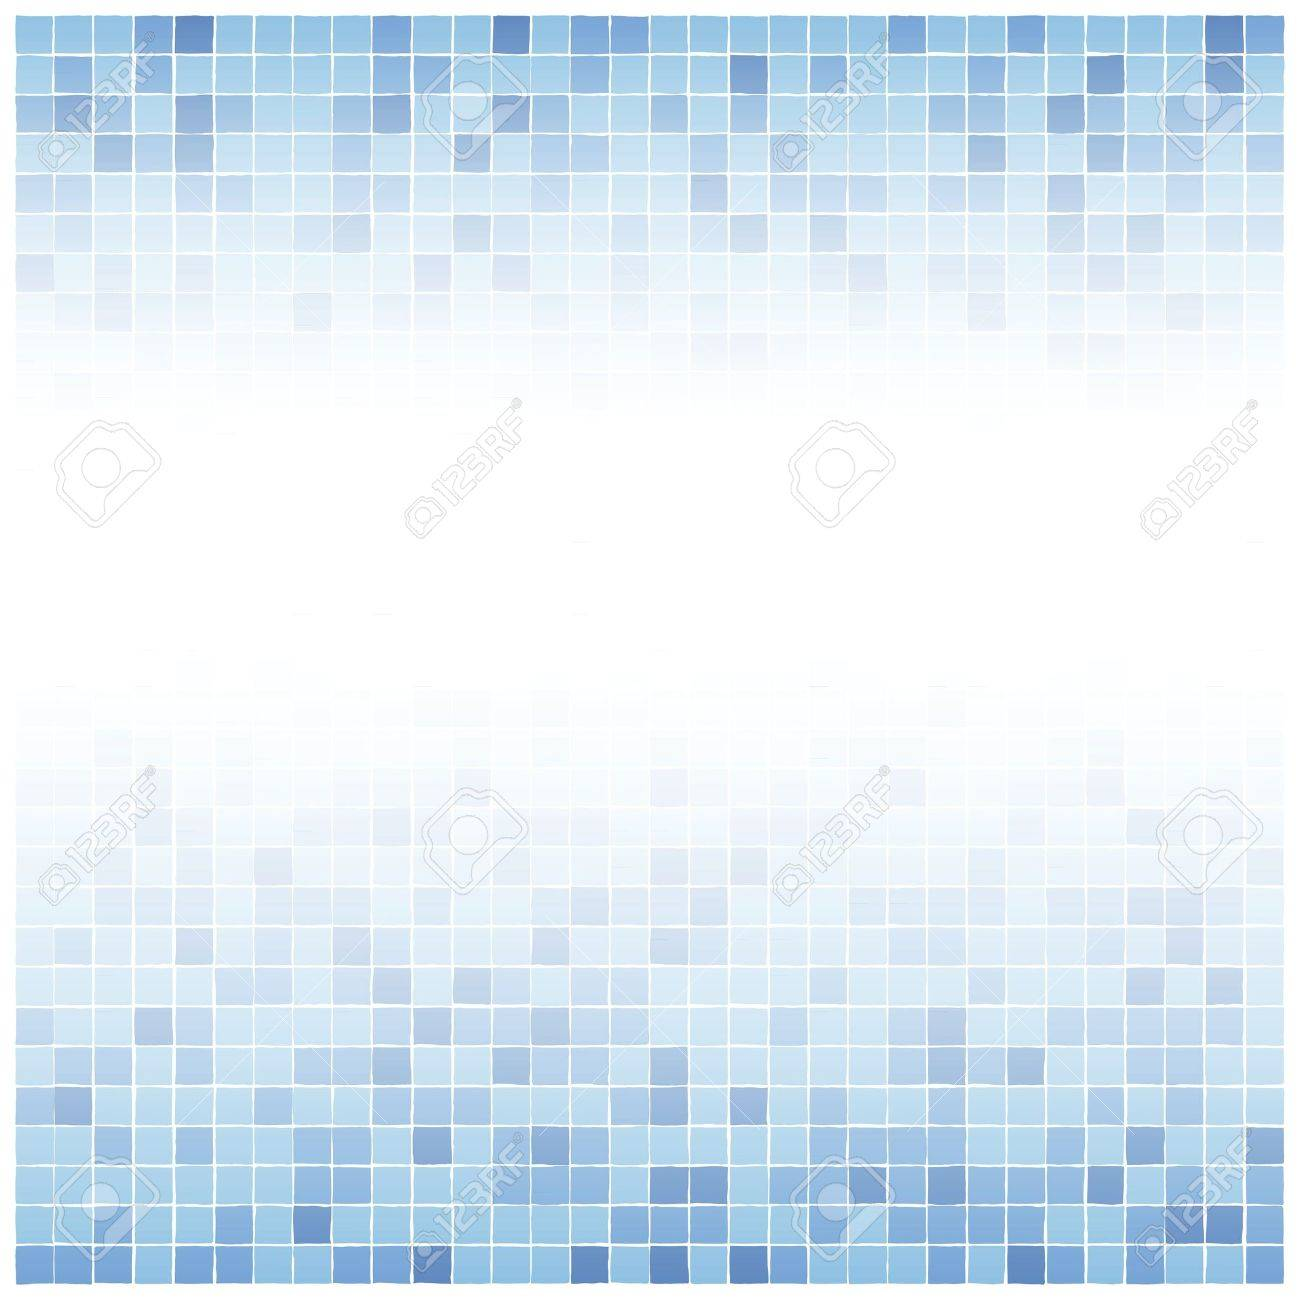 Background Of Little Irreguler Blue Tiles With White Center Fade Royalty Free Cliparts Vectors And Stock Illustration Image 19505788